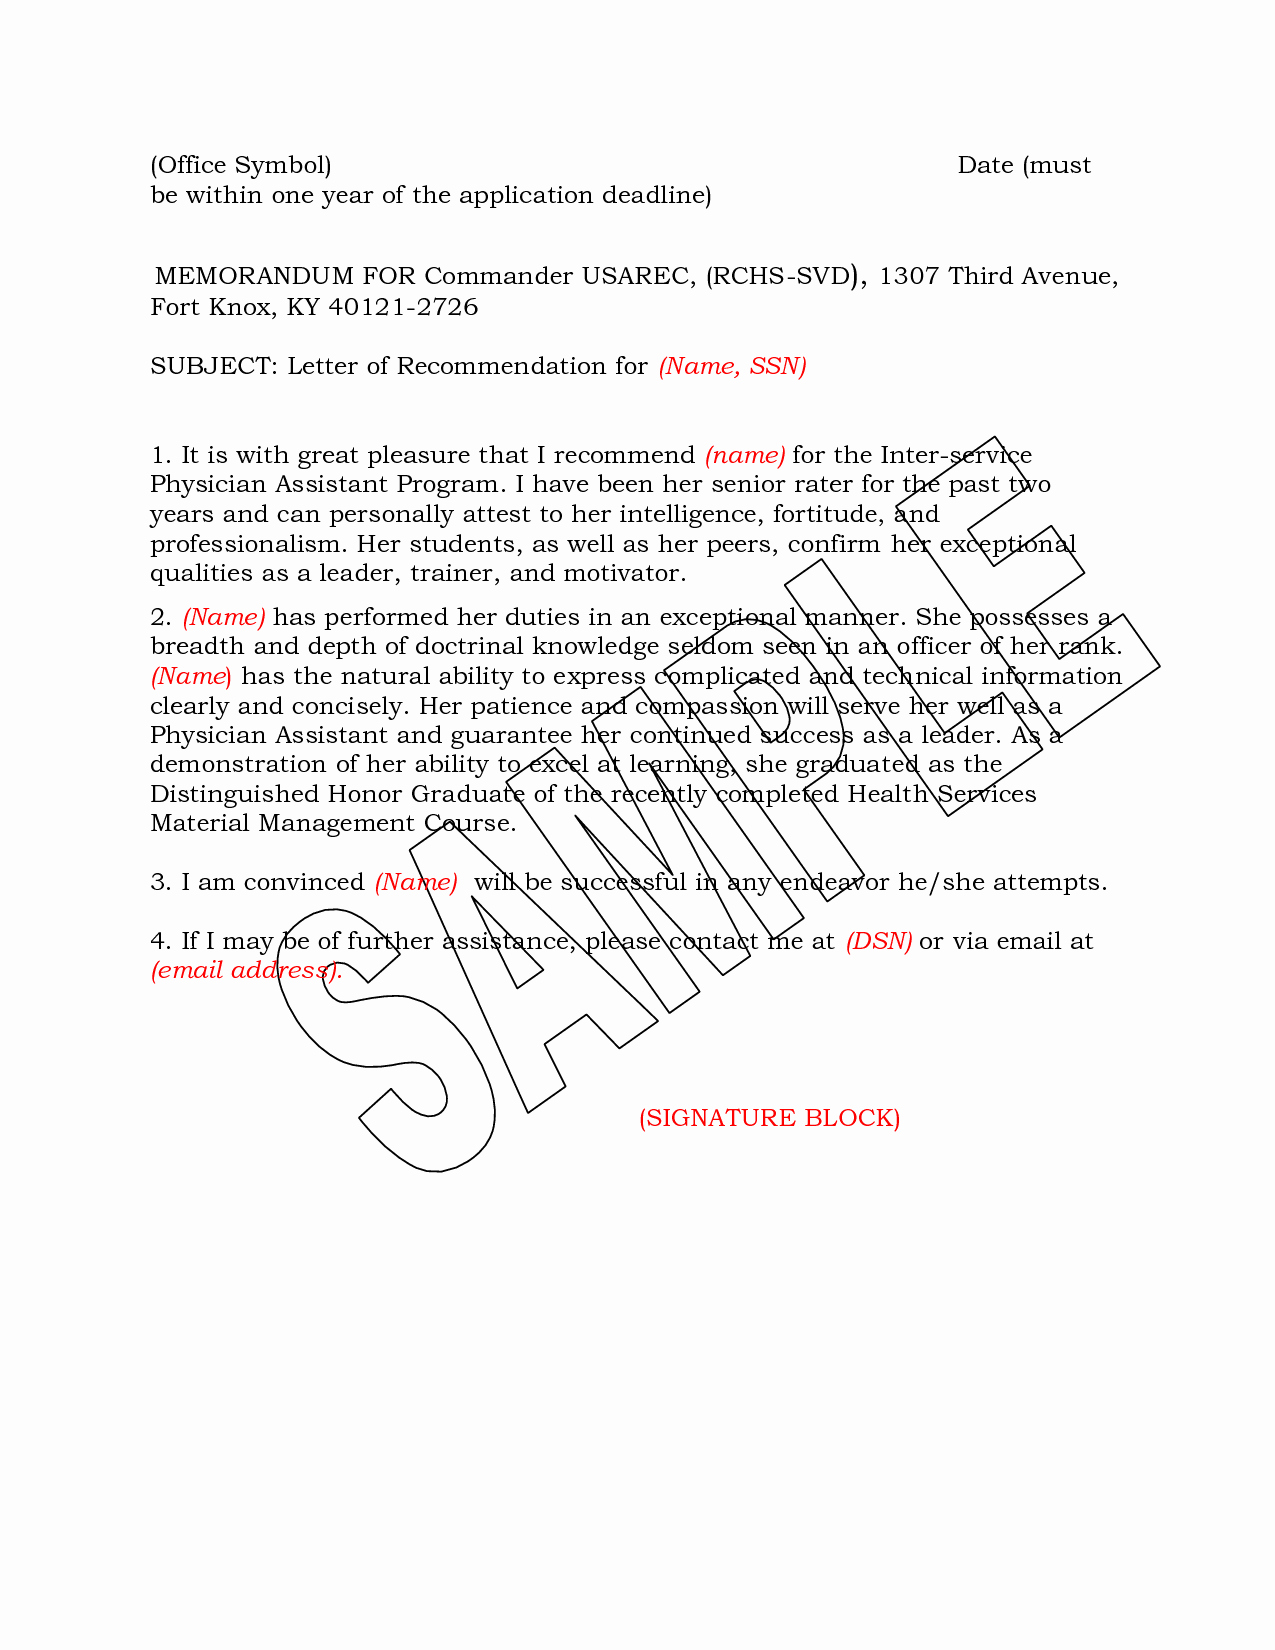 Military Letter Of Recommendation Examples Inspirational Army Letter Re Mendation